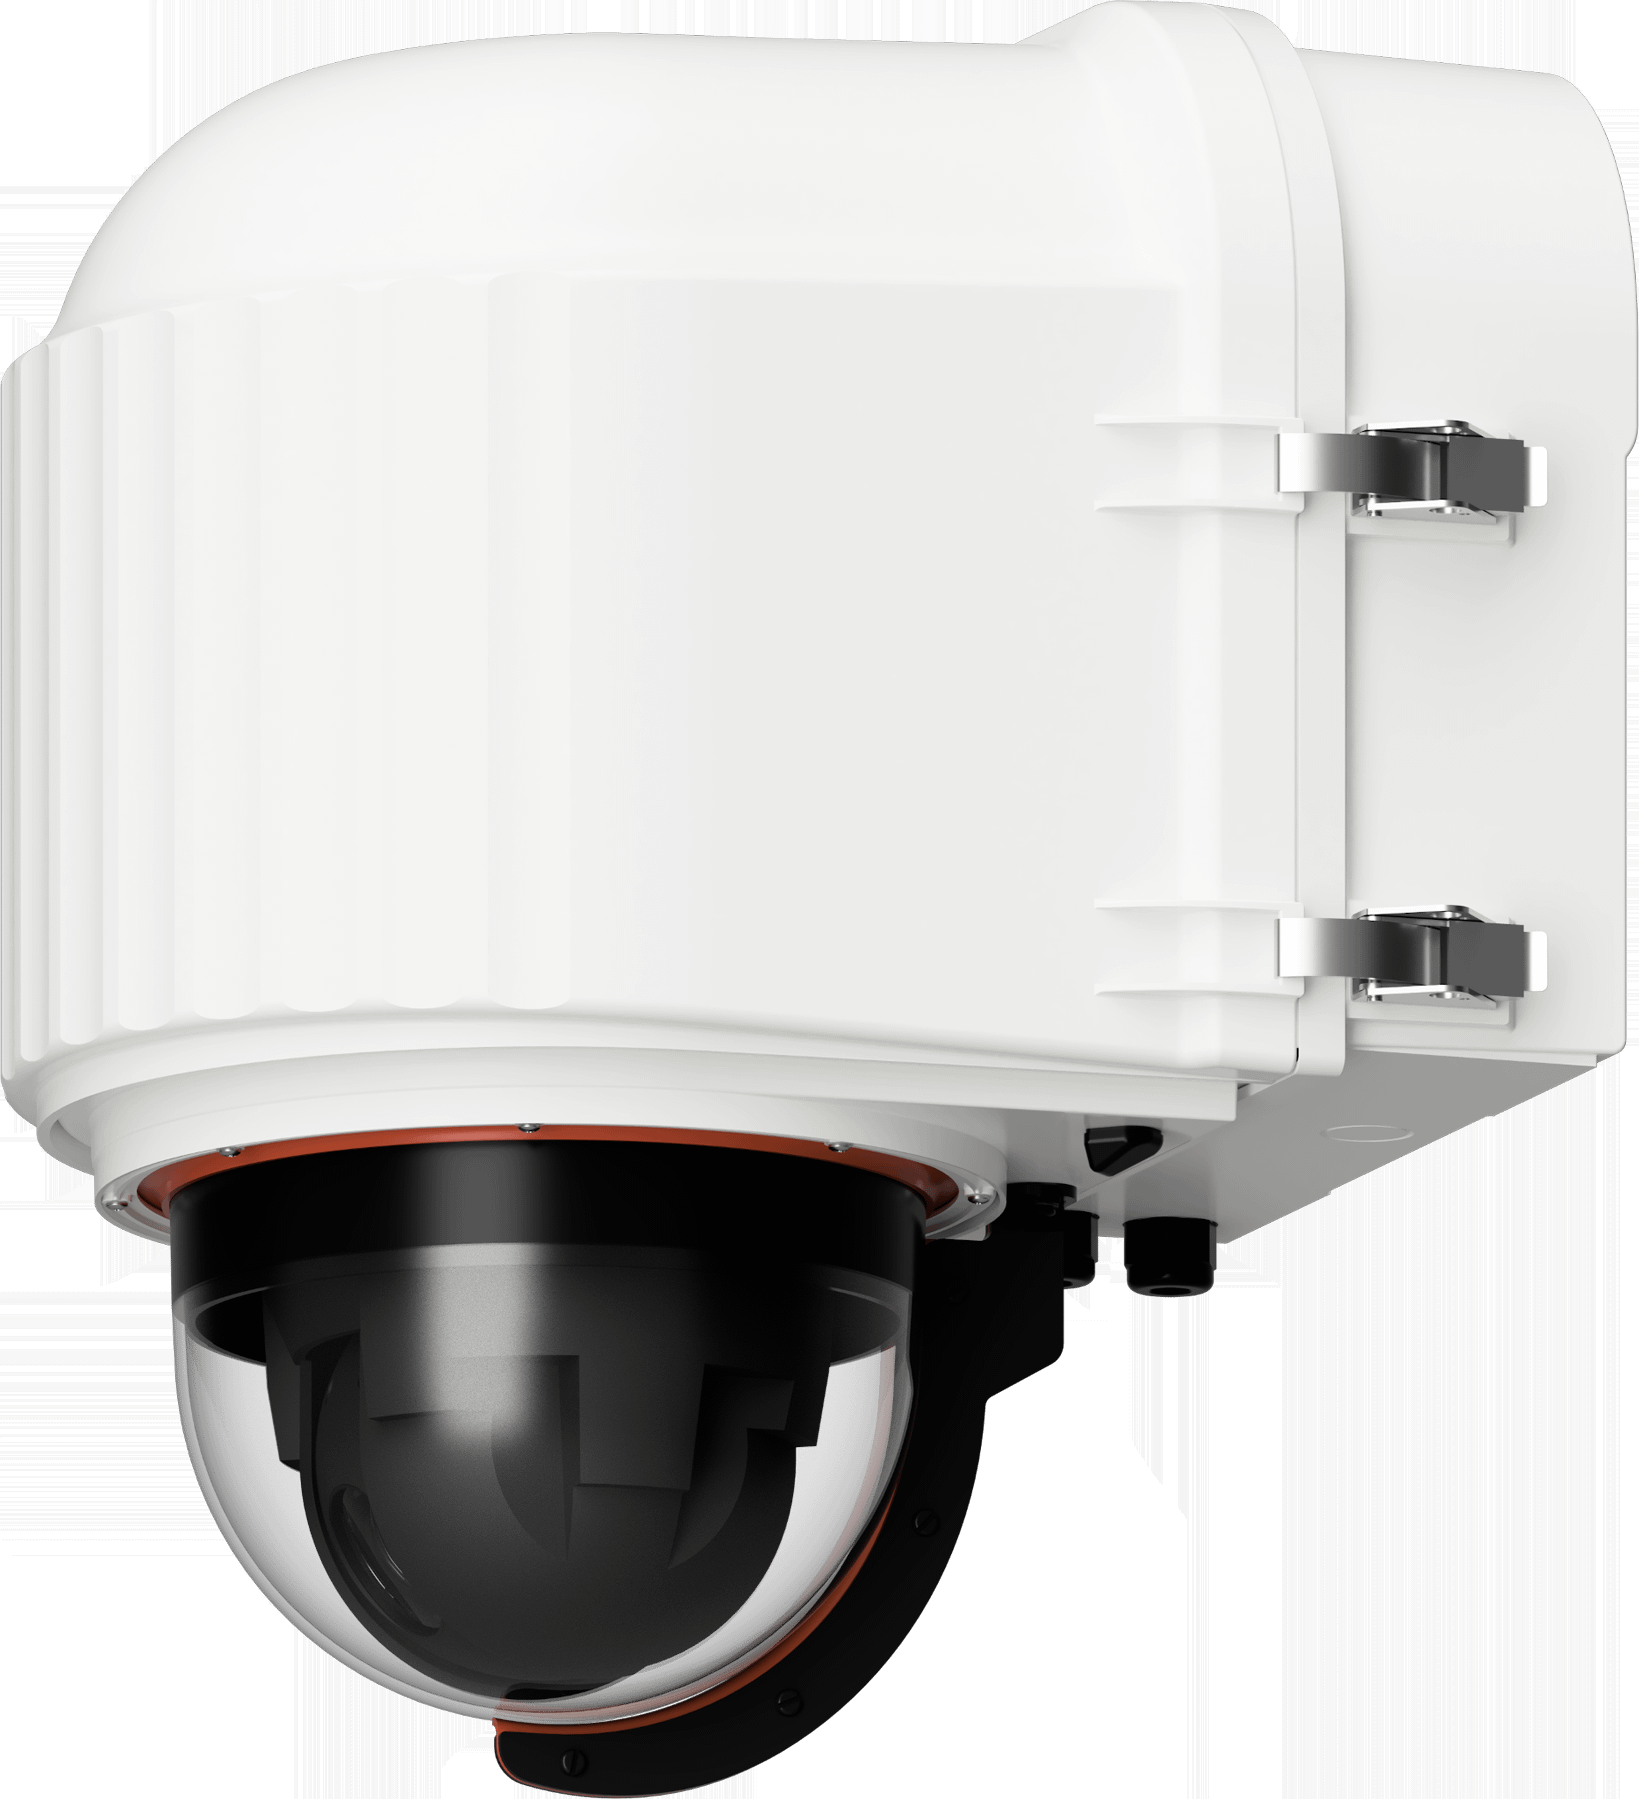 X Clear Self Cleaning Camera Enclosure